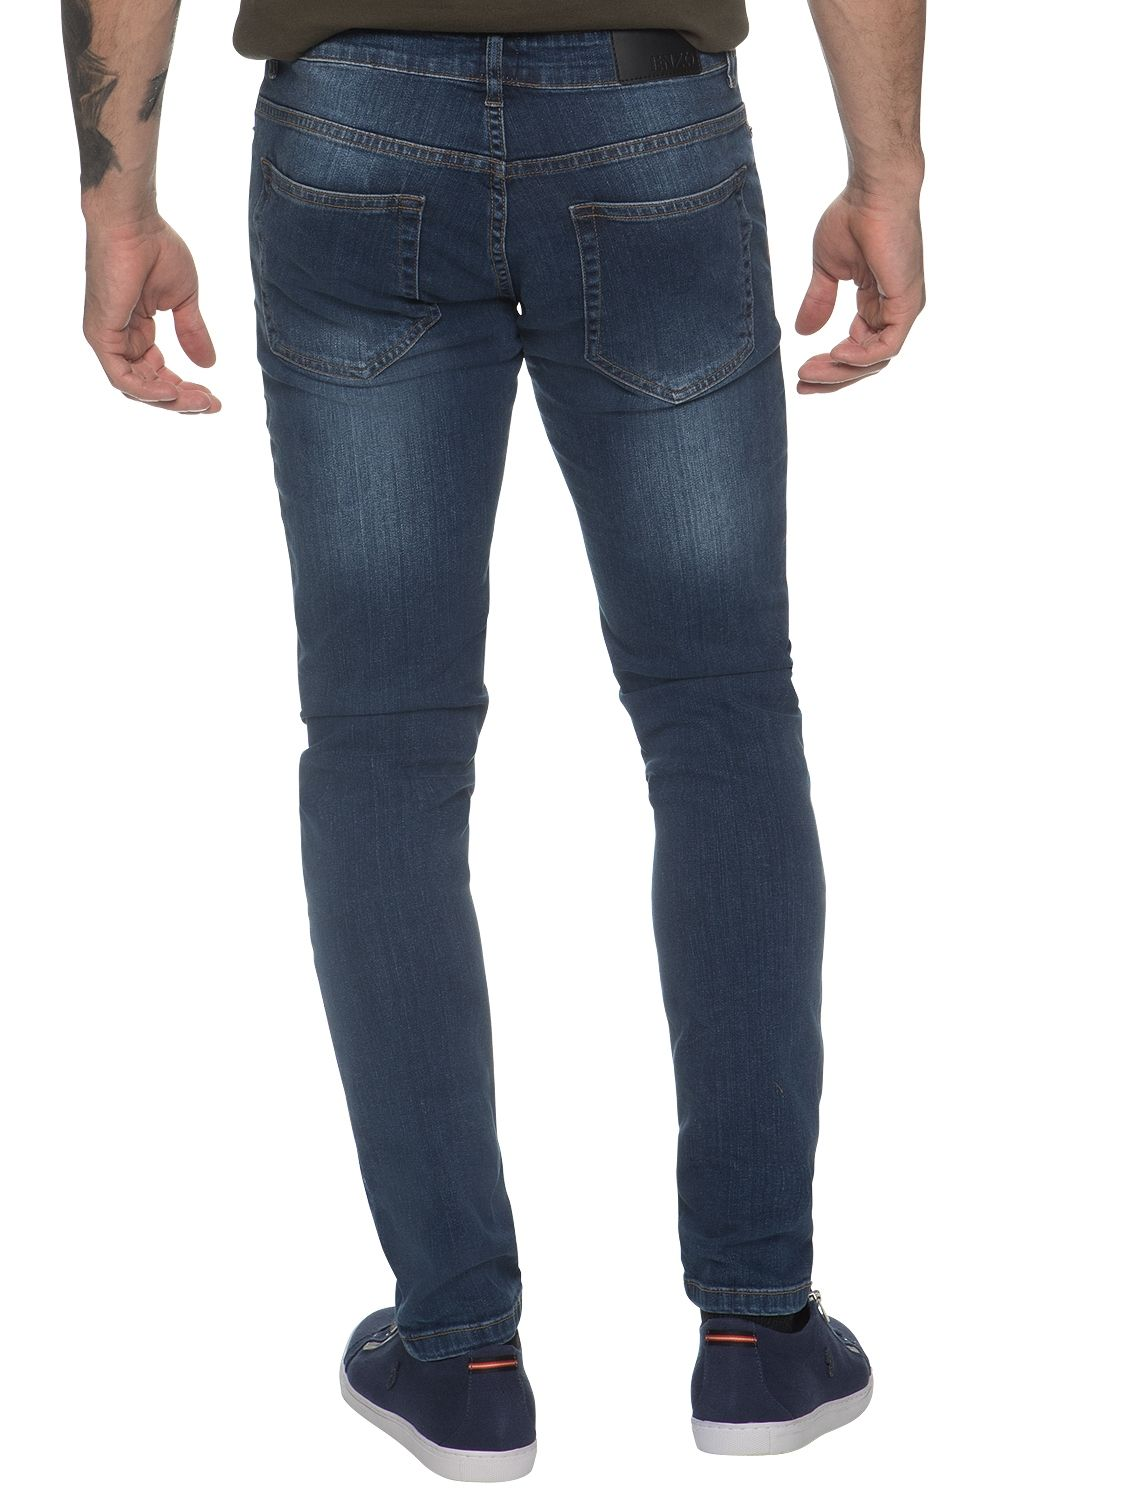 Mens Designer Stretch Skinny Fit Jeans // Enzo Menswear